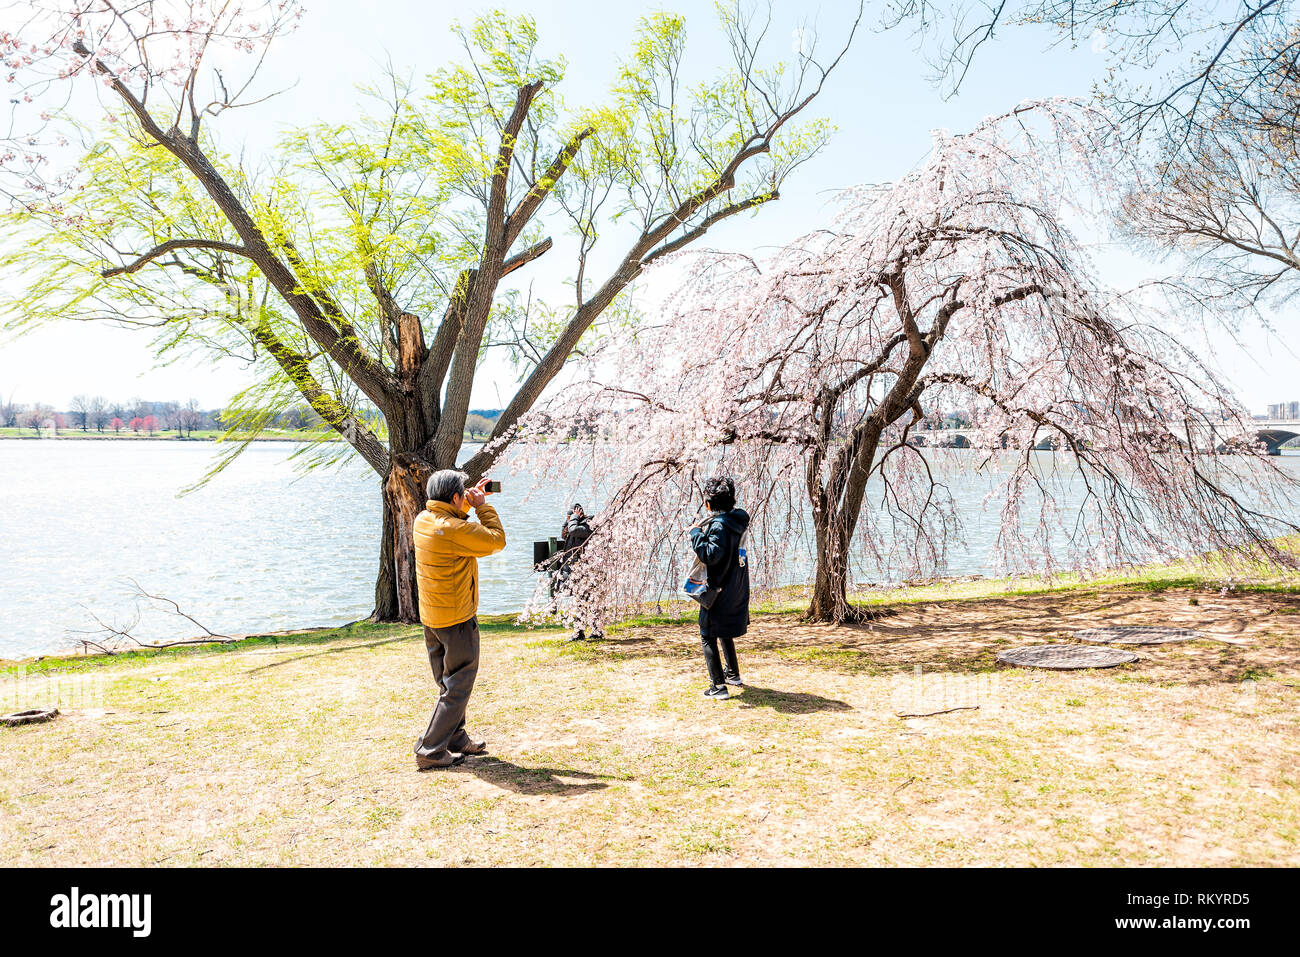 Washington DC, USA - April 5, 2018: Tourists asian people couple taking pictures by cherry blossom sakura trees in spring with potomac river memorial  - Stock Image